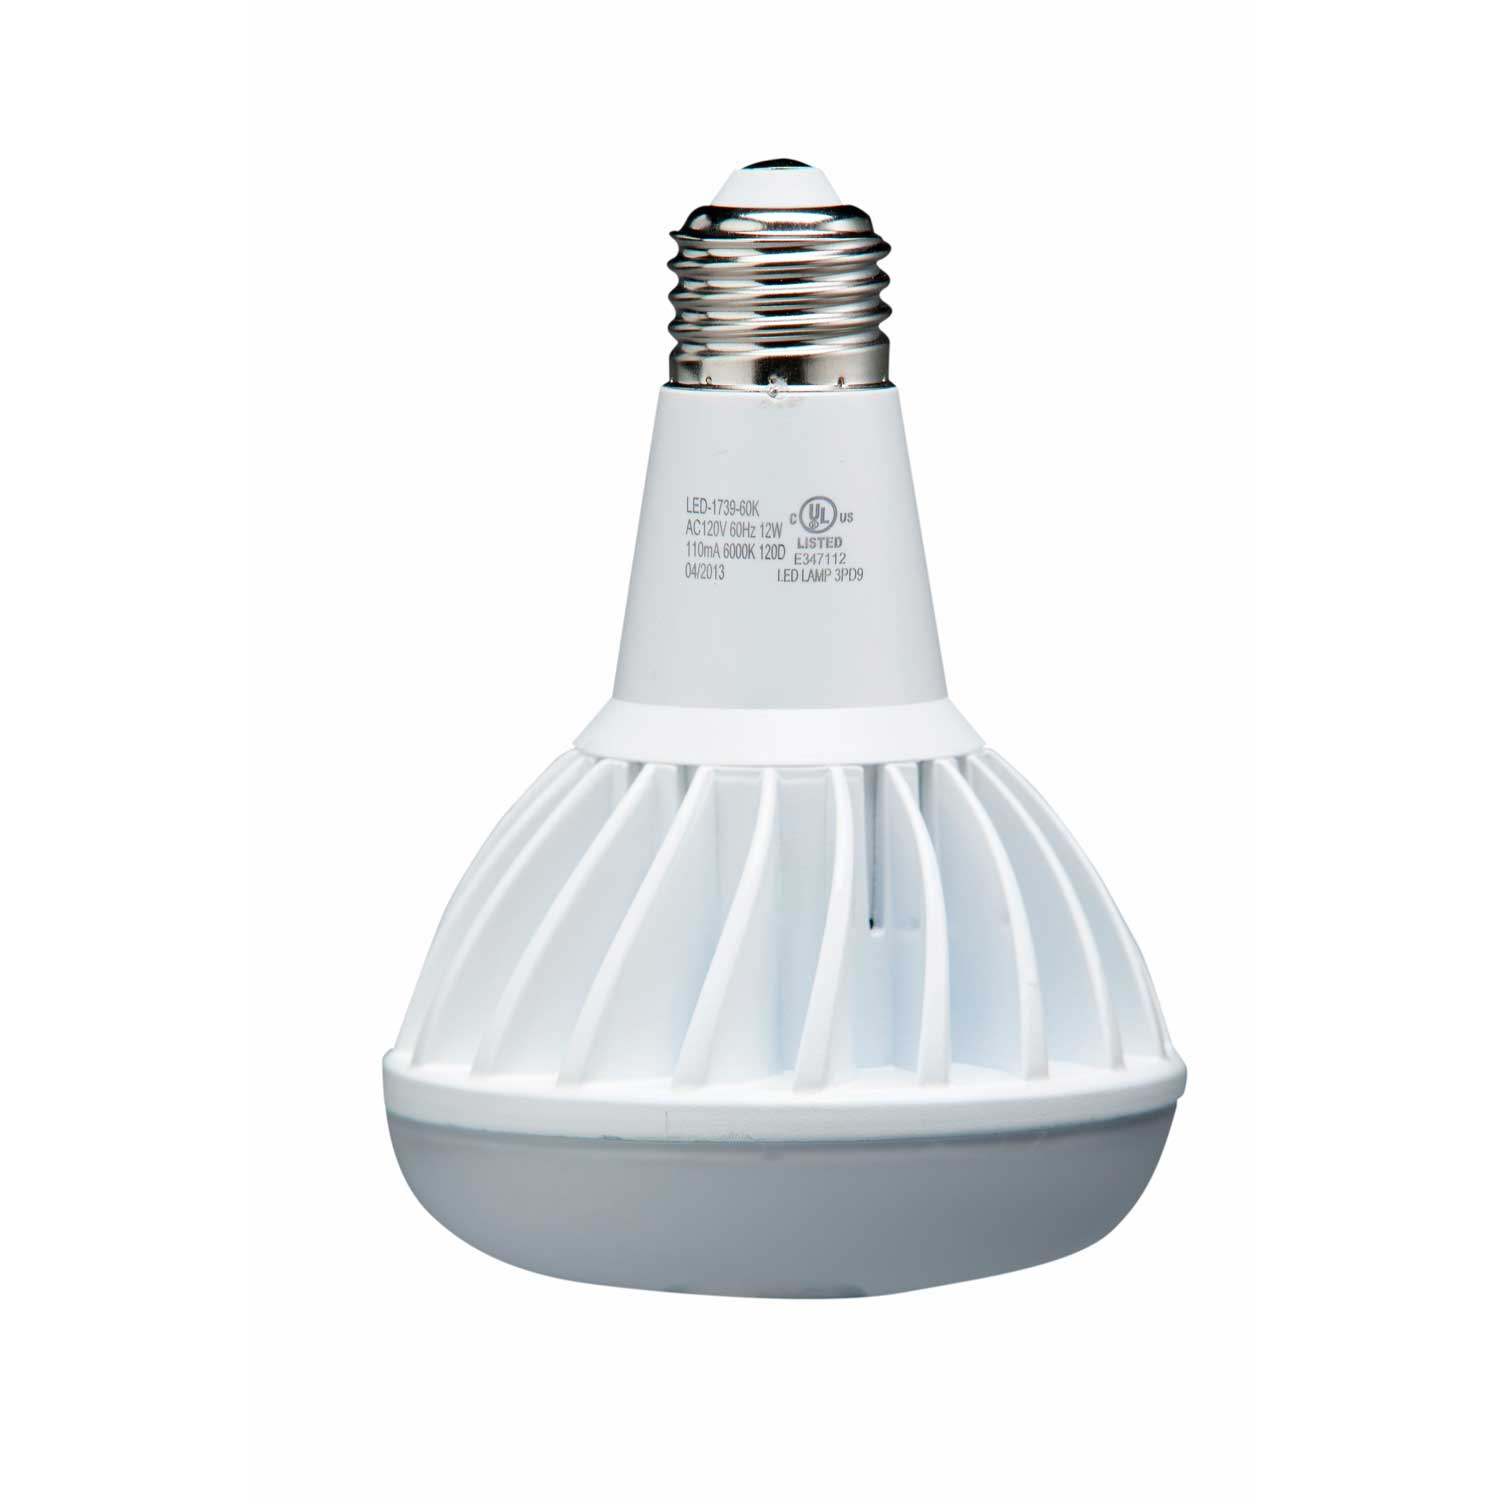 Light Efficient Design Led 1739 60k 277 Bulb Br30 12w75w Replacement Great Brands Outlet